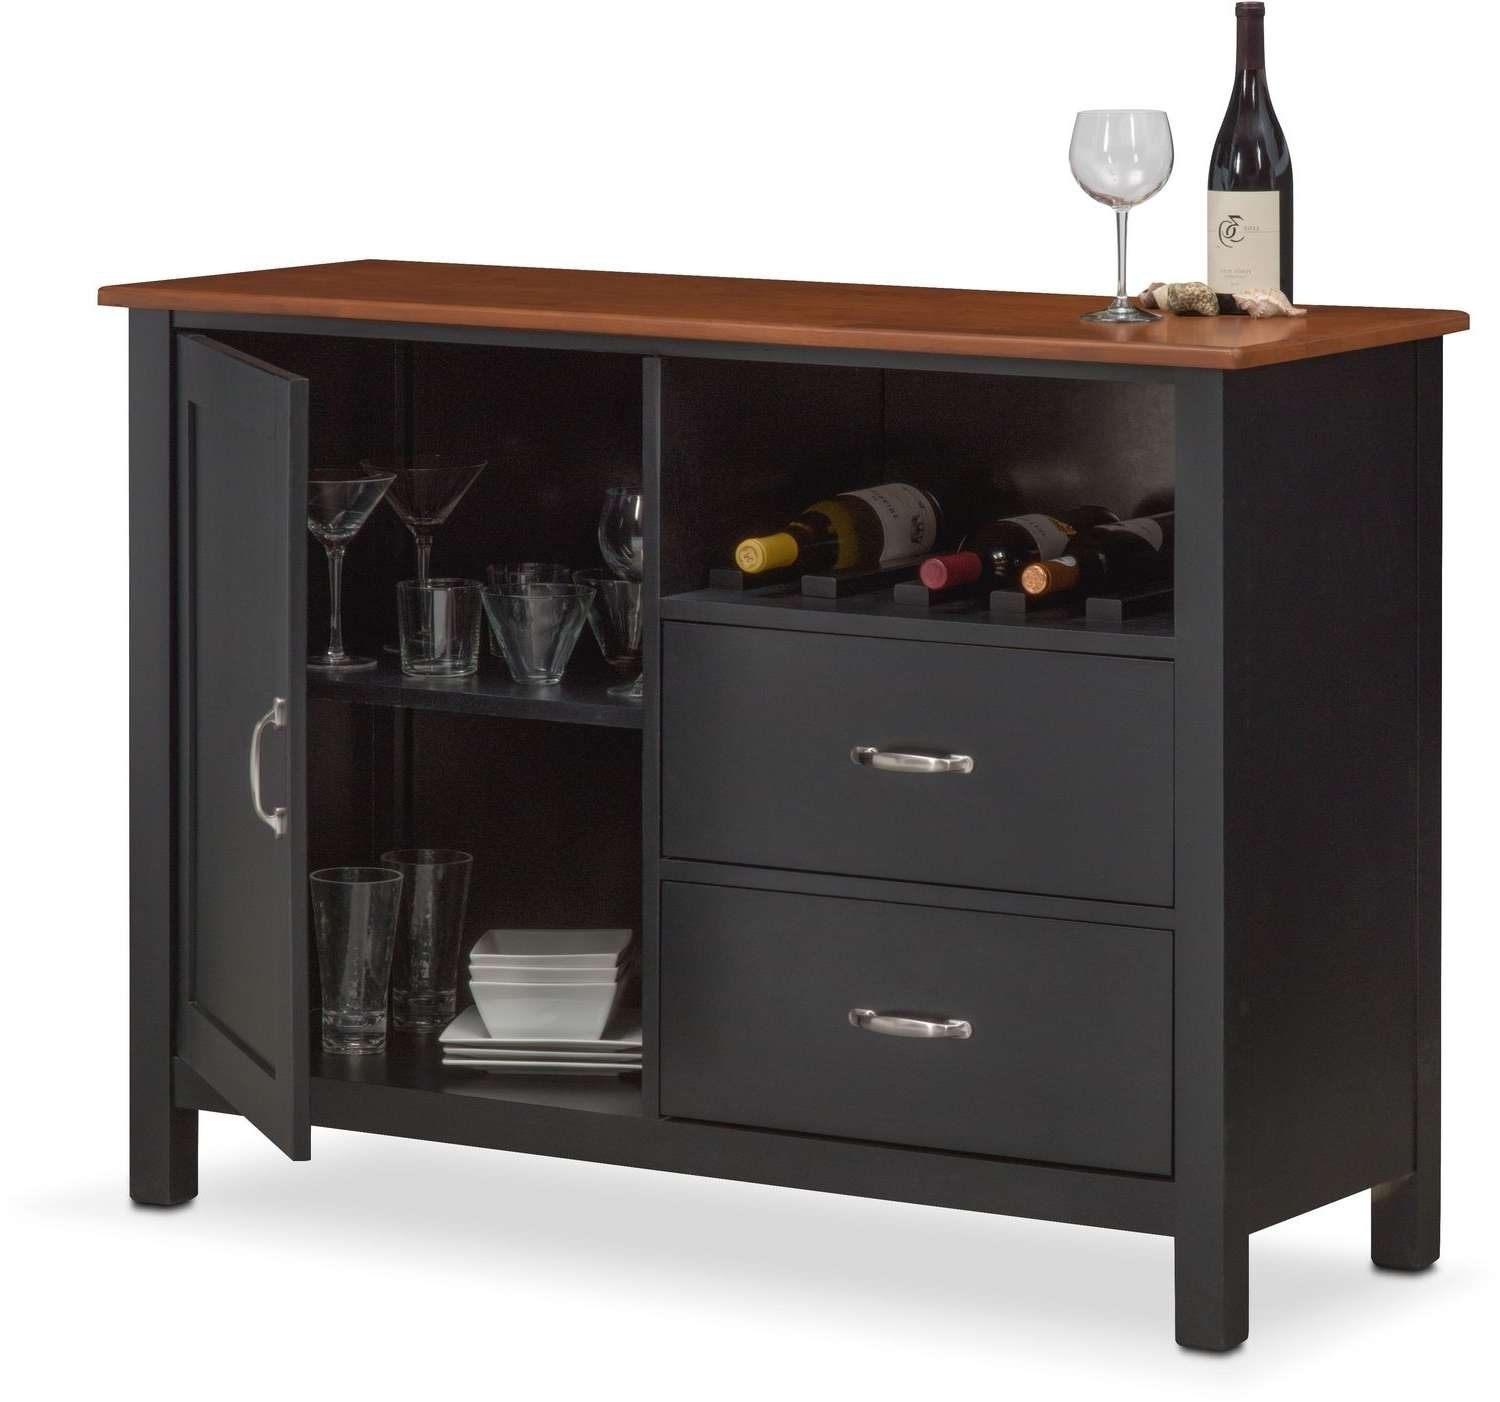 Buffet & Sideboard Cabinets | Value City Furniture And Mattresses With Regard To Furniture Sideboards (View 14 of 20)